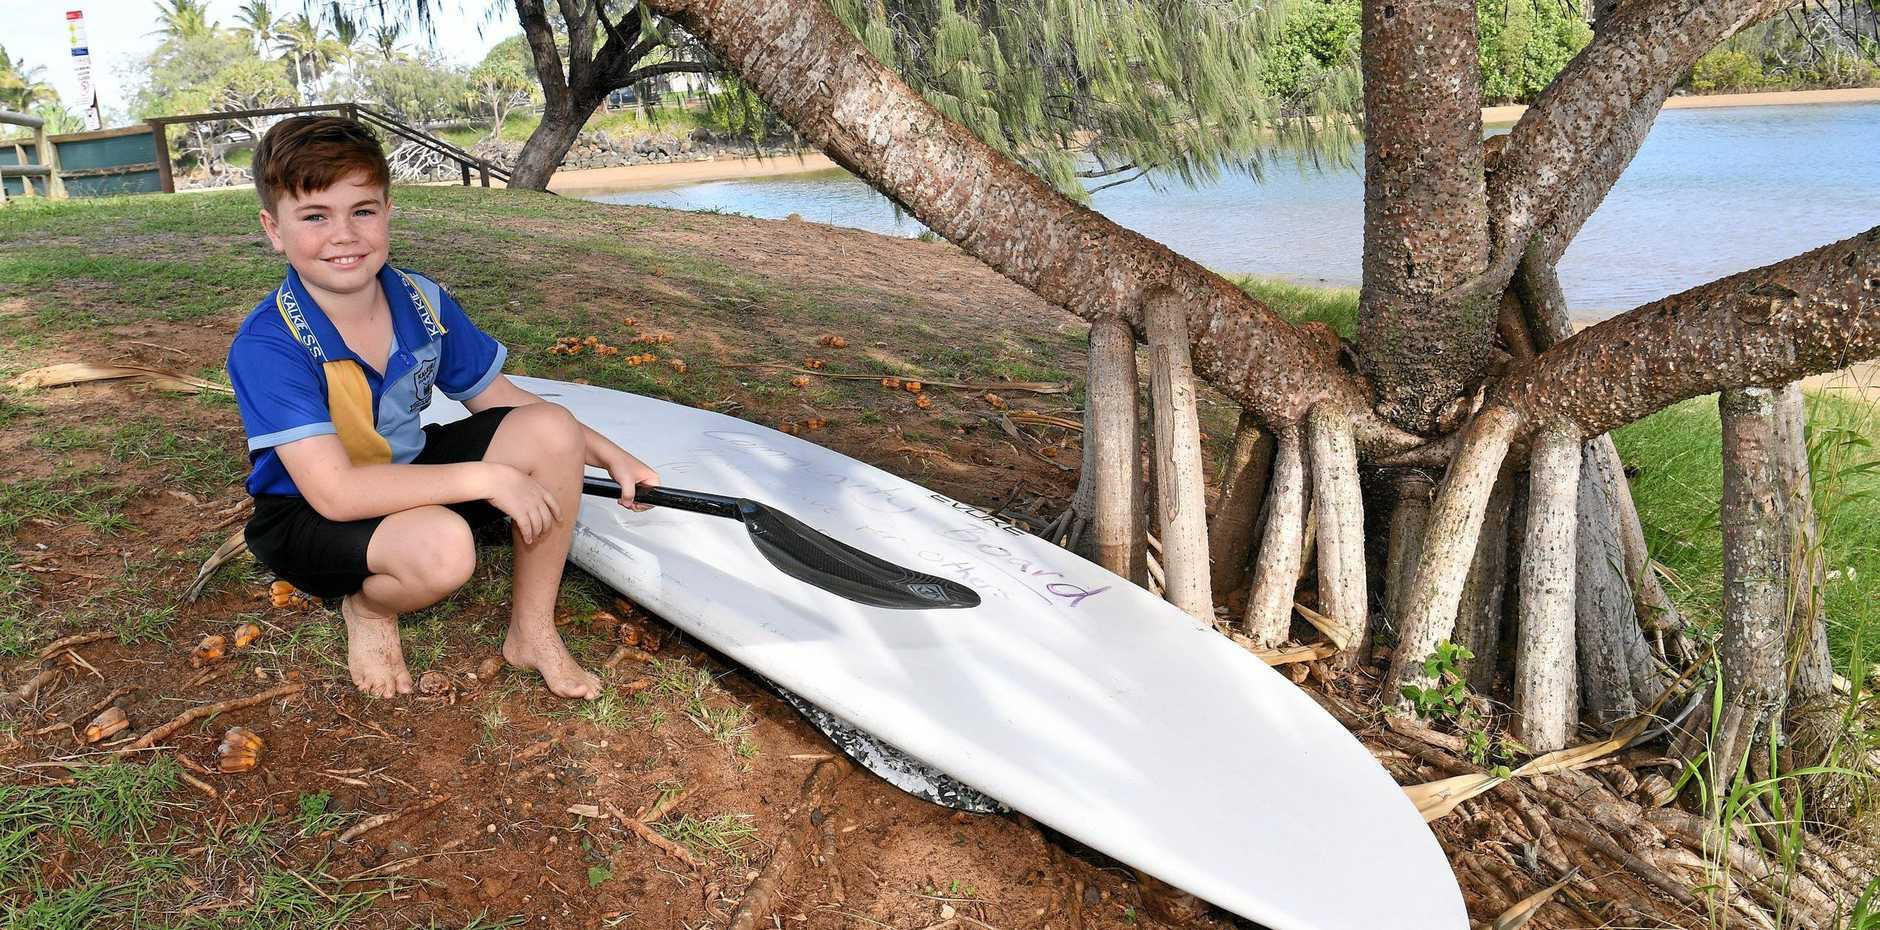 PADDLE AWAY: Hudson McKenzie said the board would be great for people who don't own one, and he may come and use it soon.